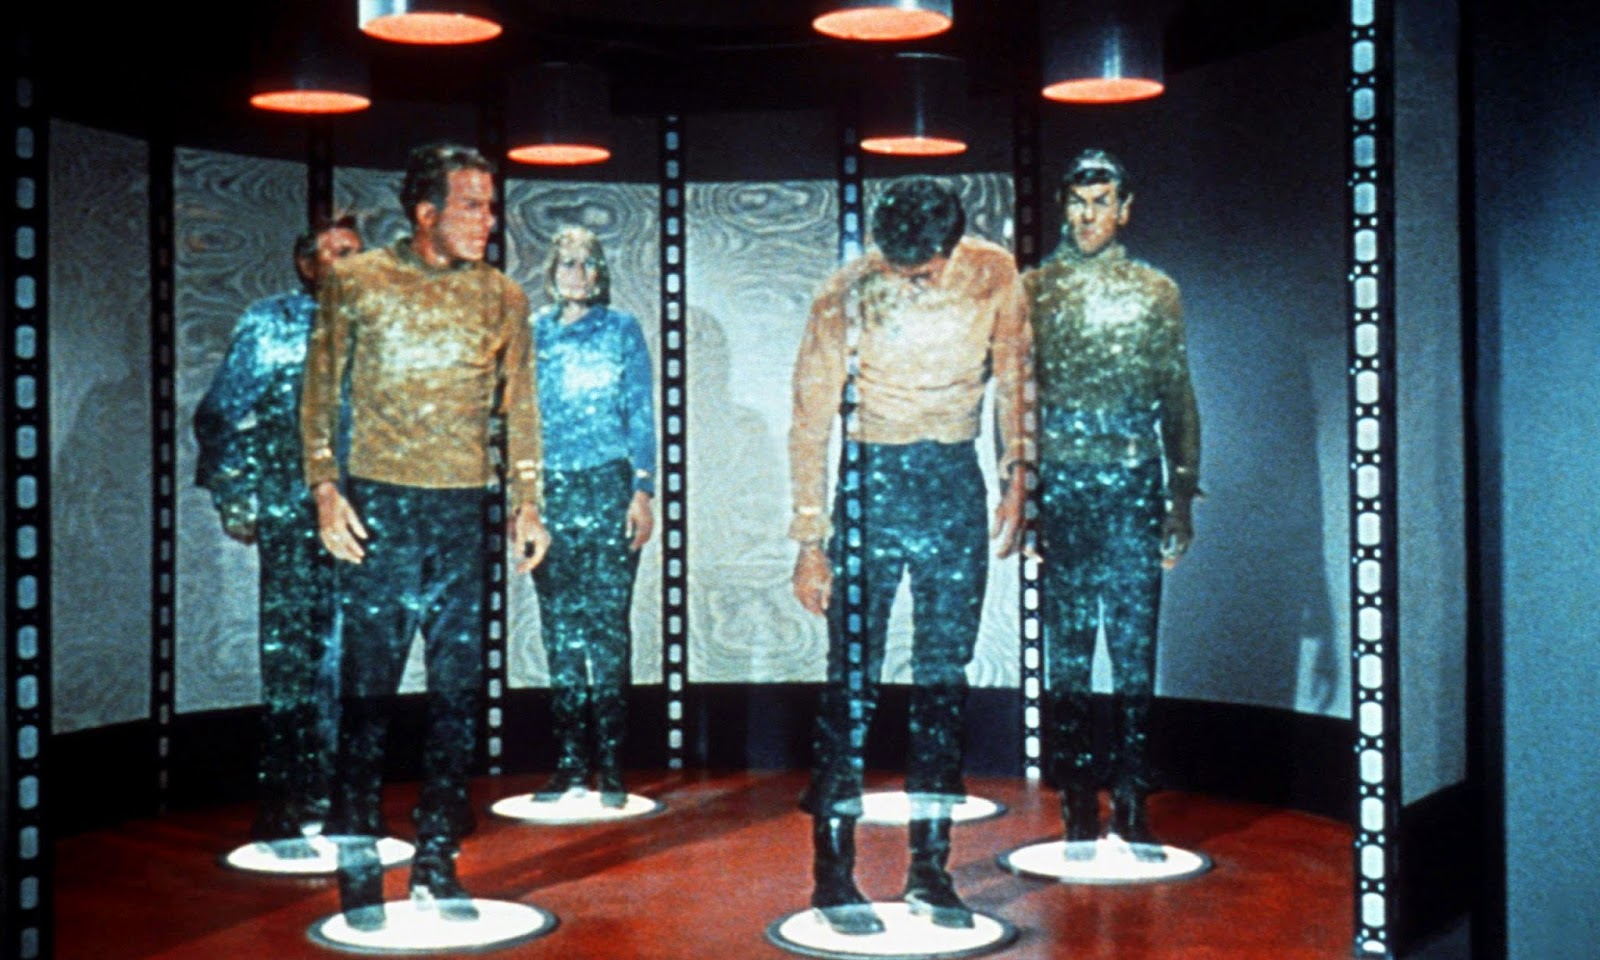 Kirk-Spock-and-crew-get-t-014